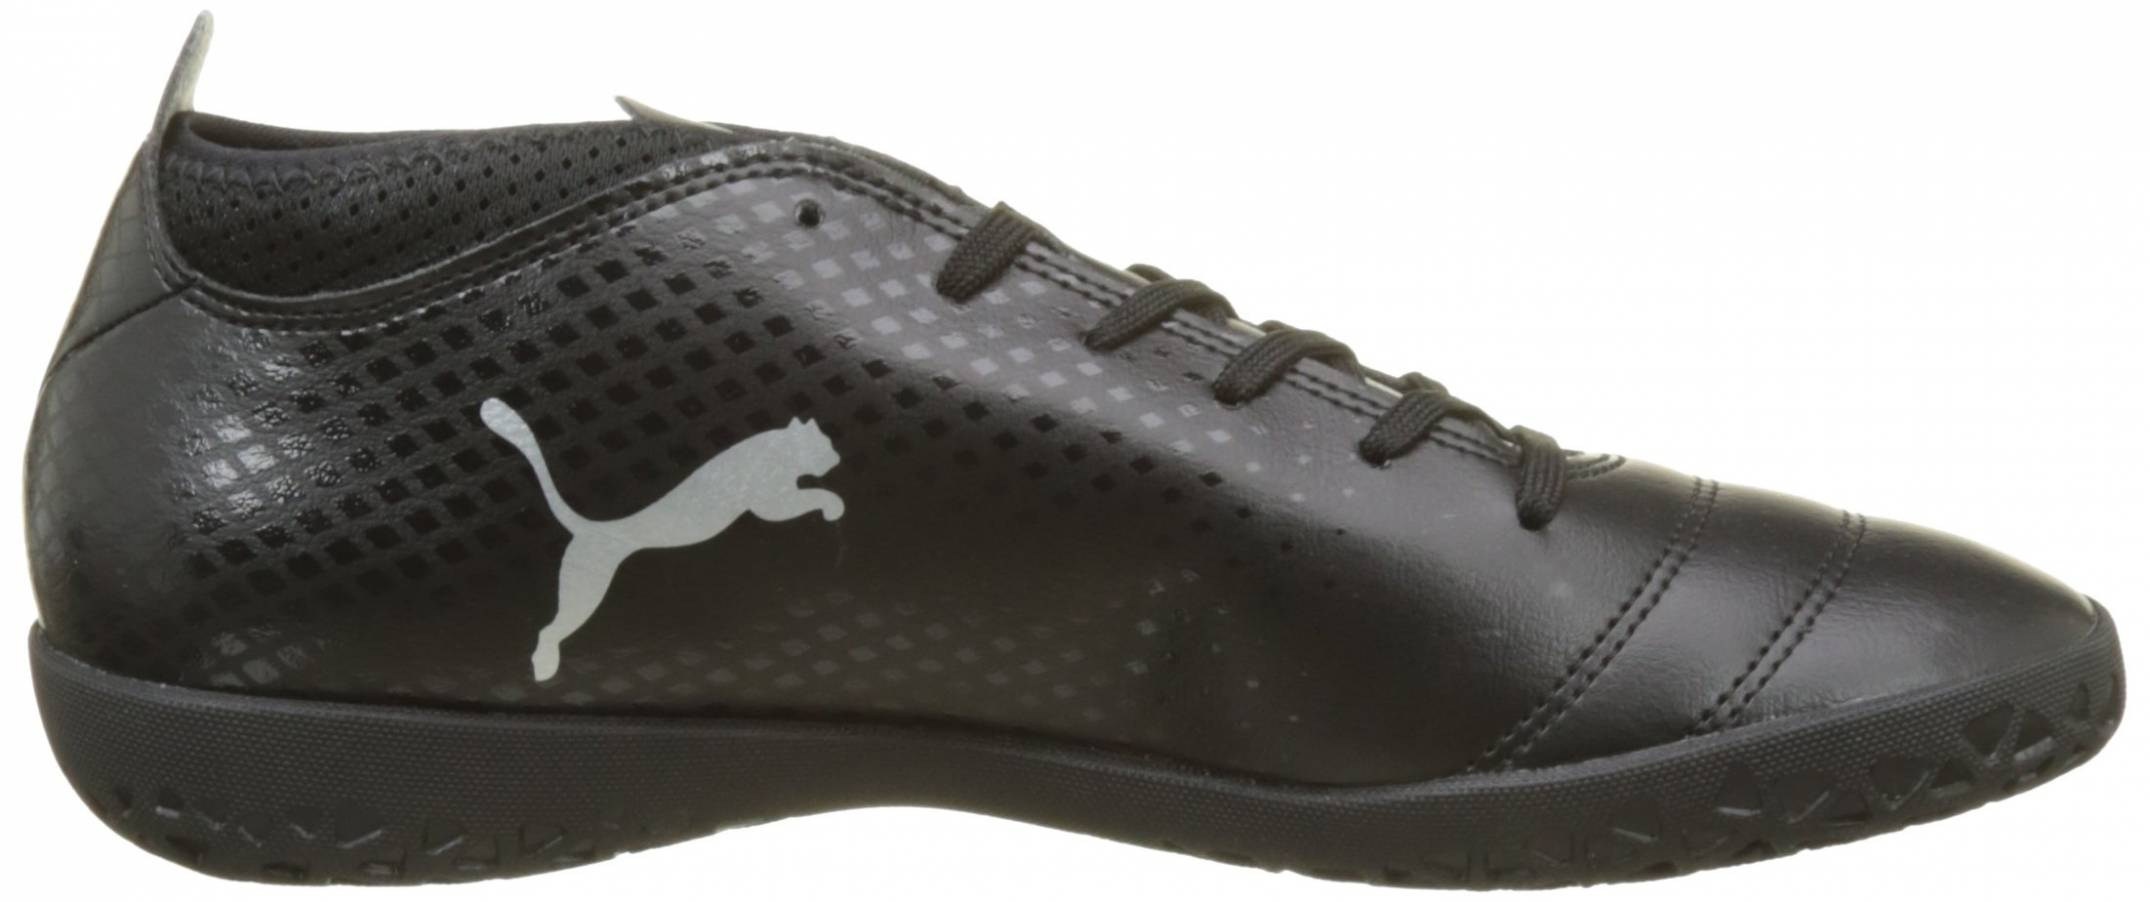 Save 36% on Puma Indoor Soccer Cleats